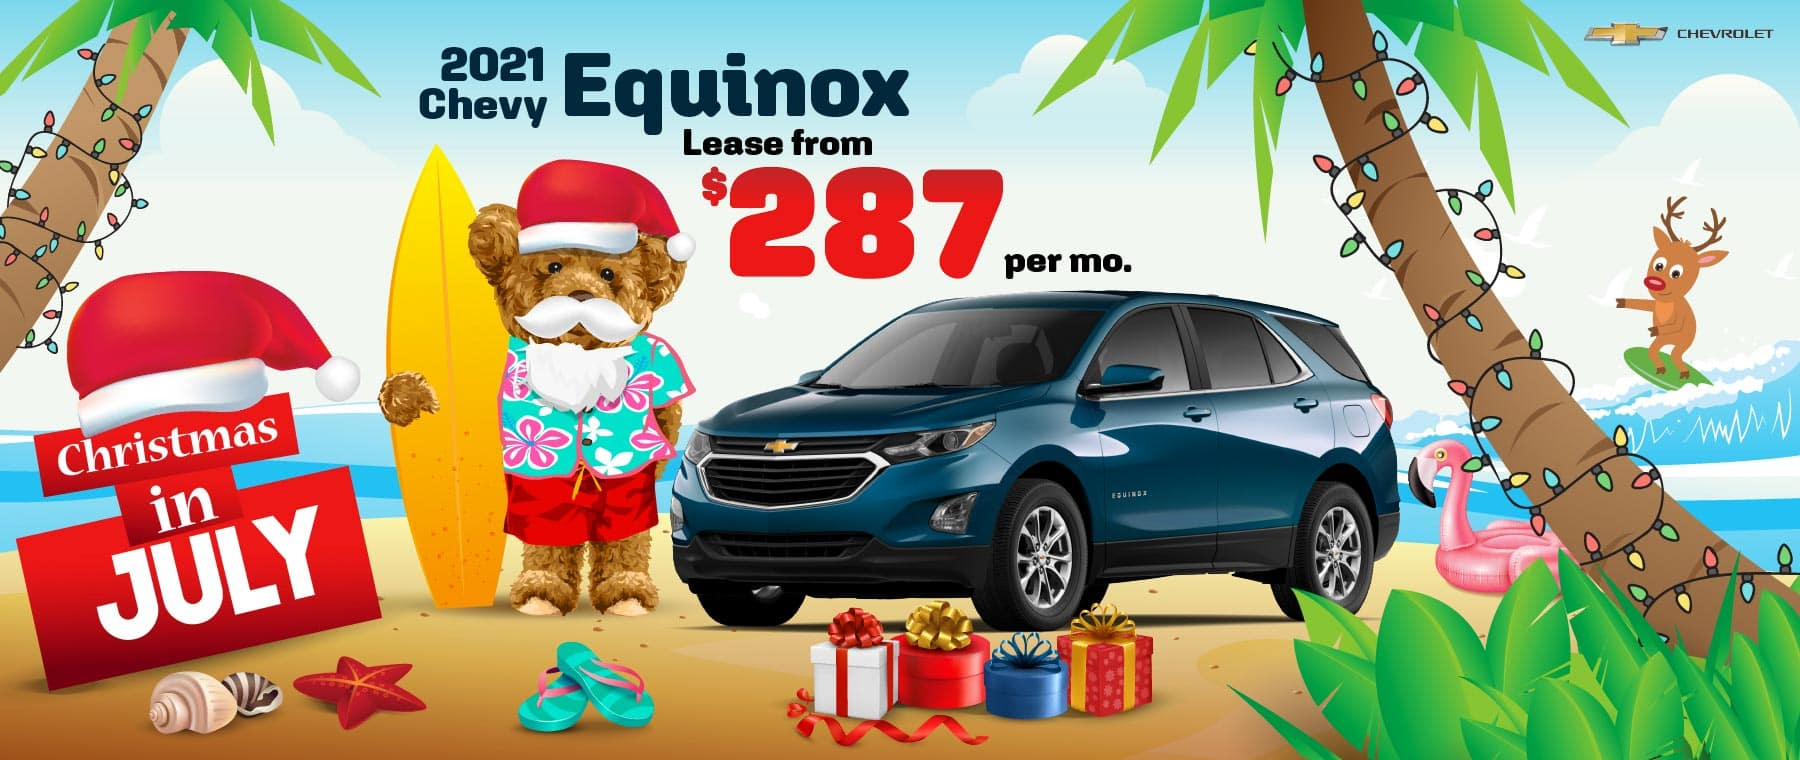 2021 Chevy Equinox - lease from $287 per month